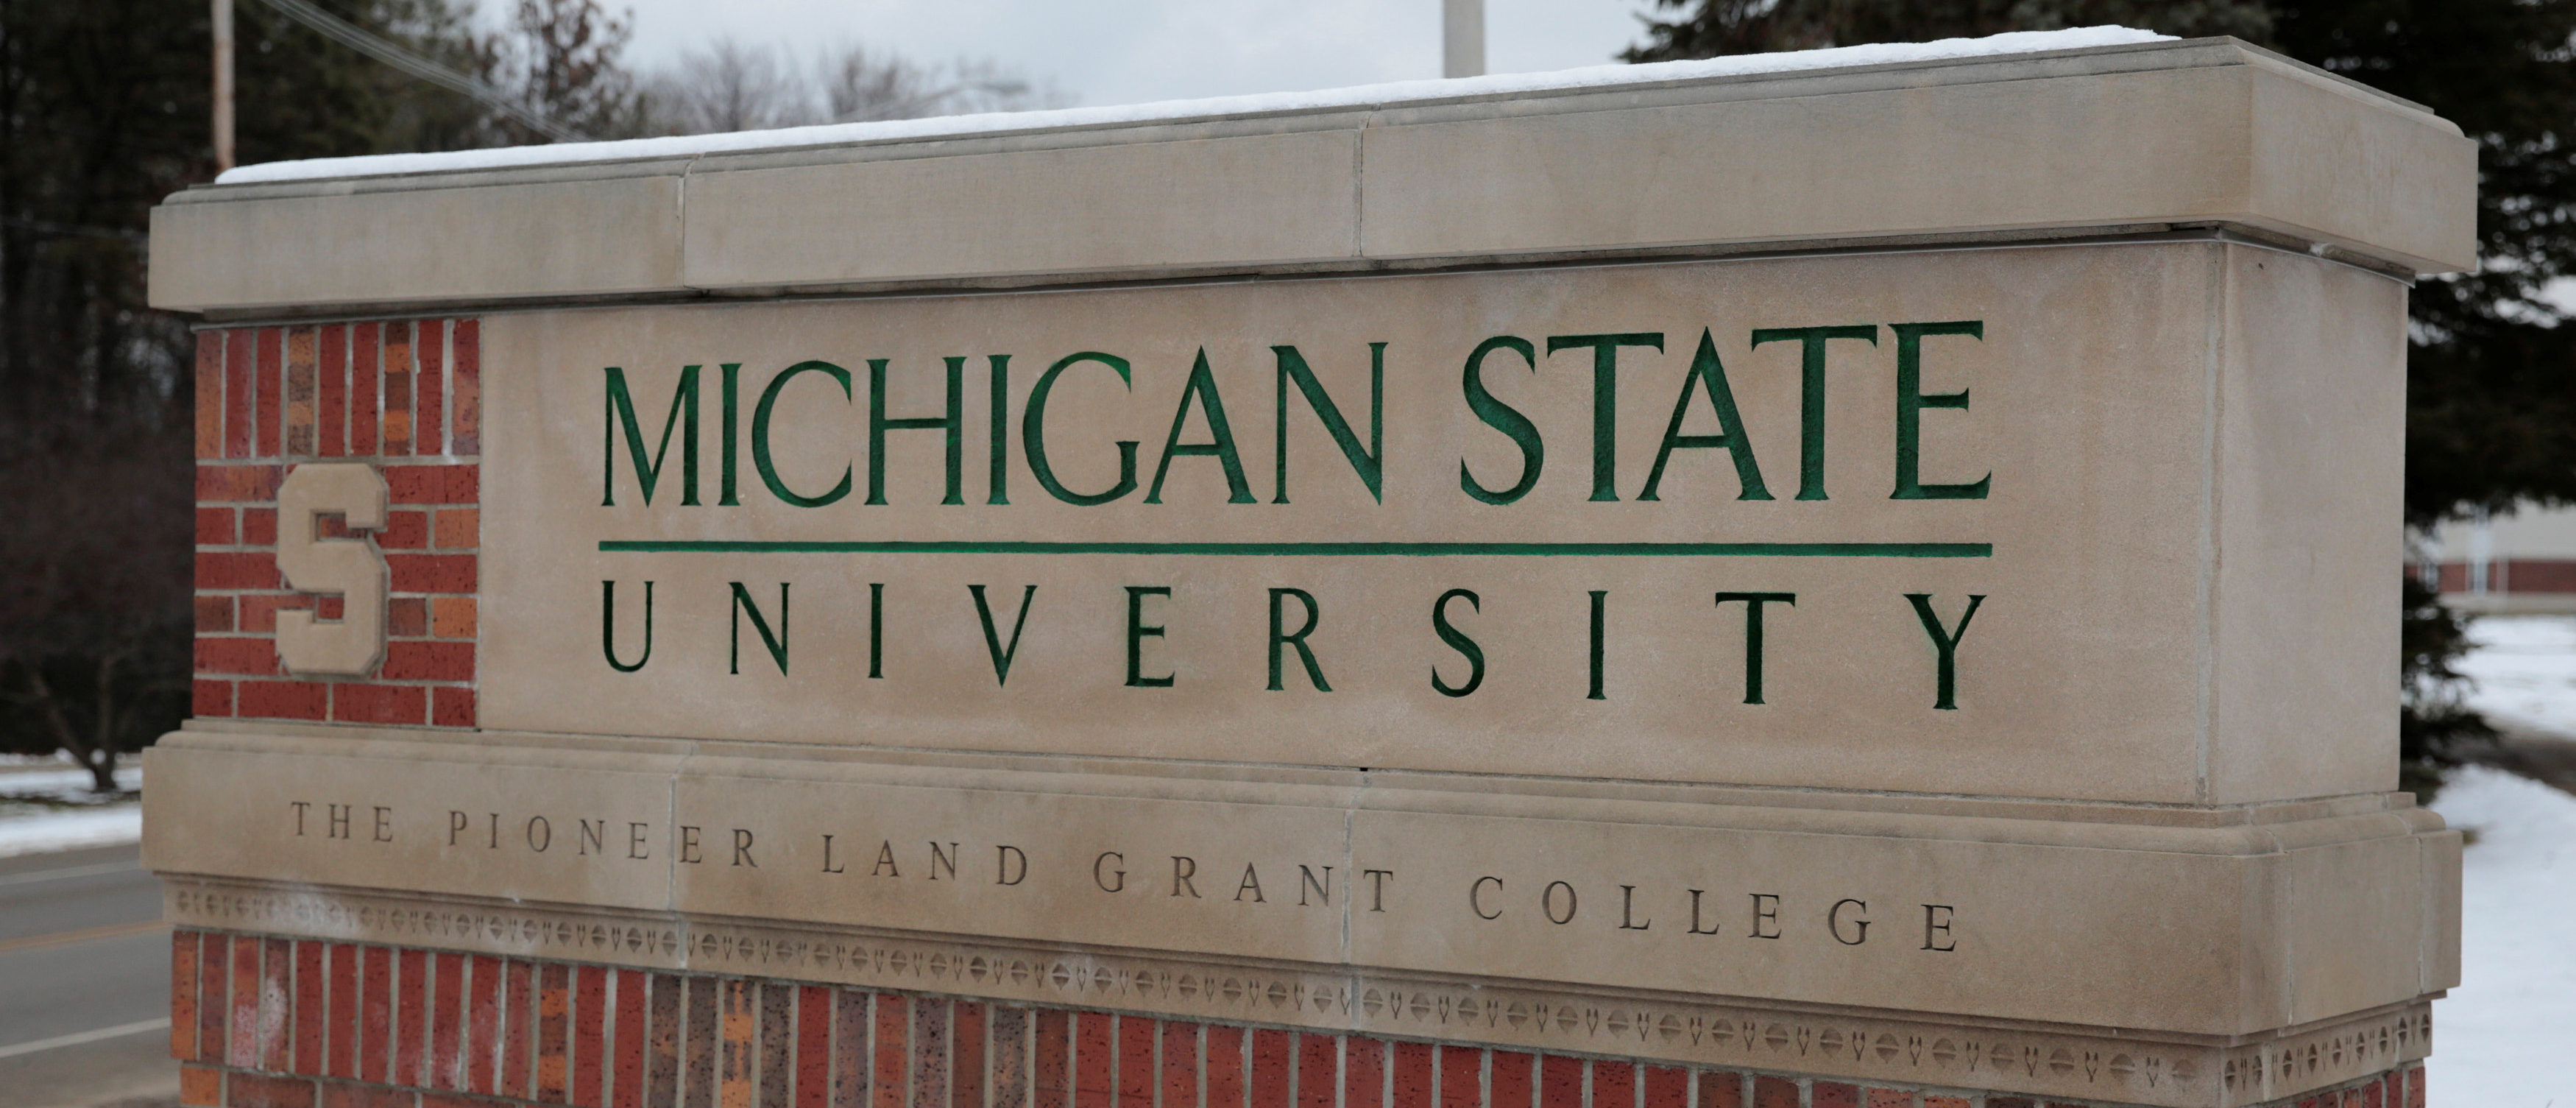 A sign for Michigan State University is seen near the campus in East Lansing, Michigan, February 1, 2018. REUTERS/Rebecca Cook